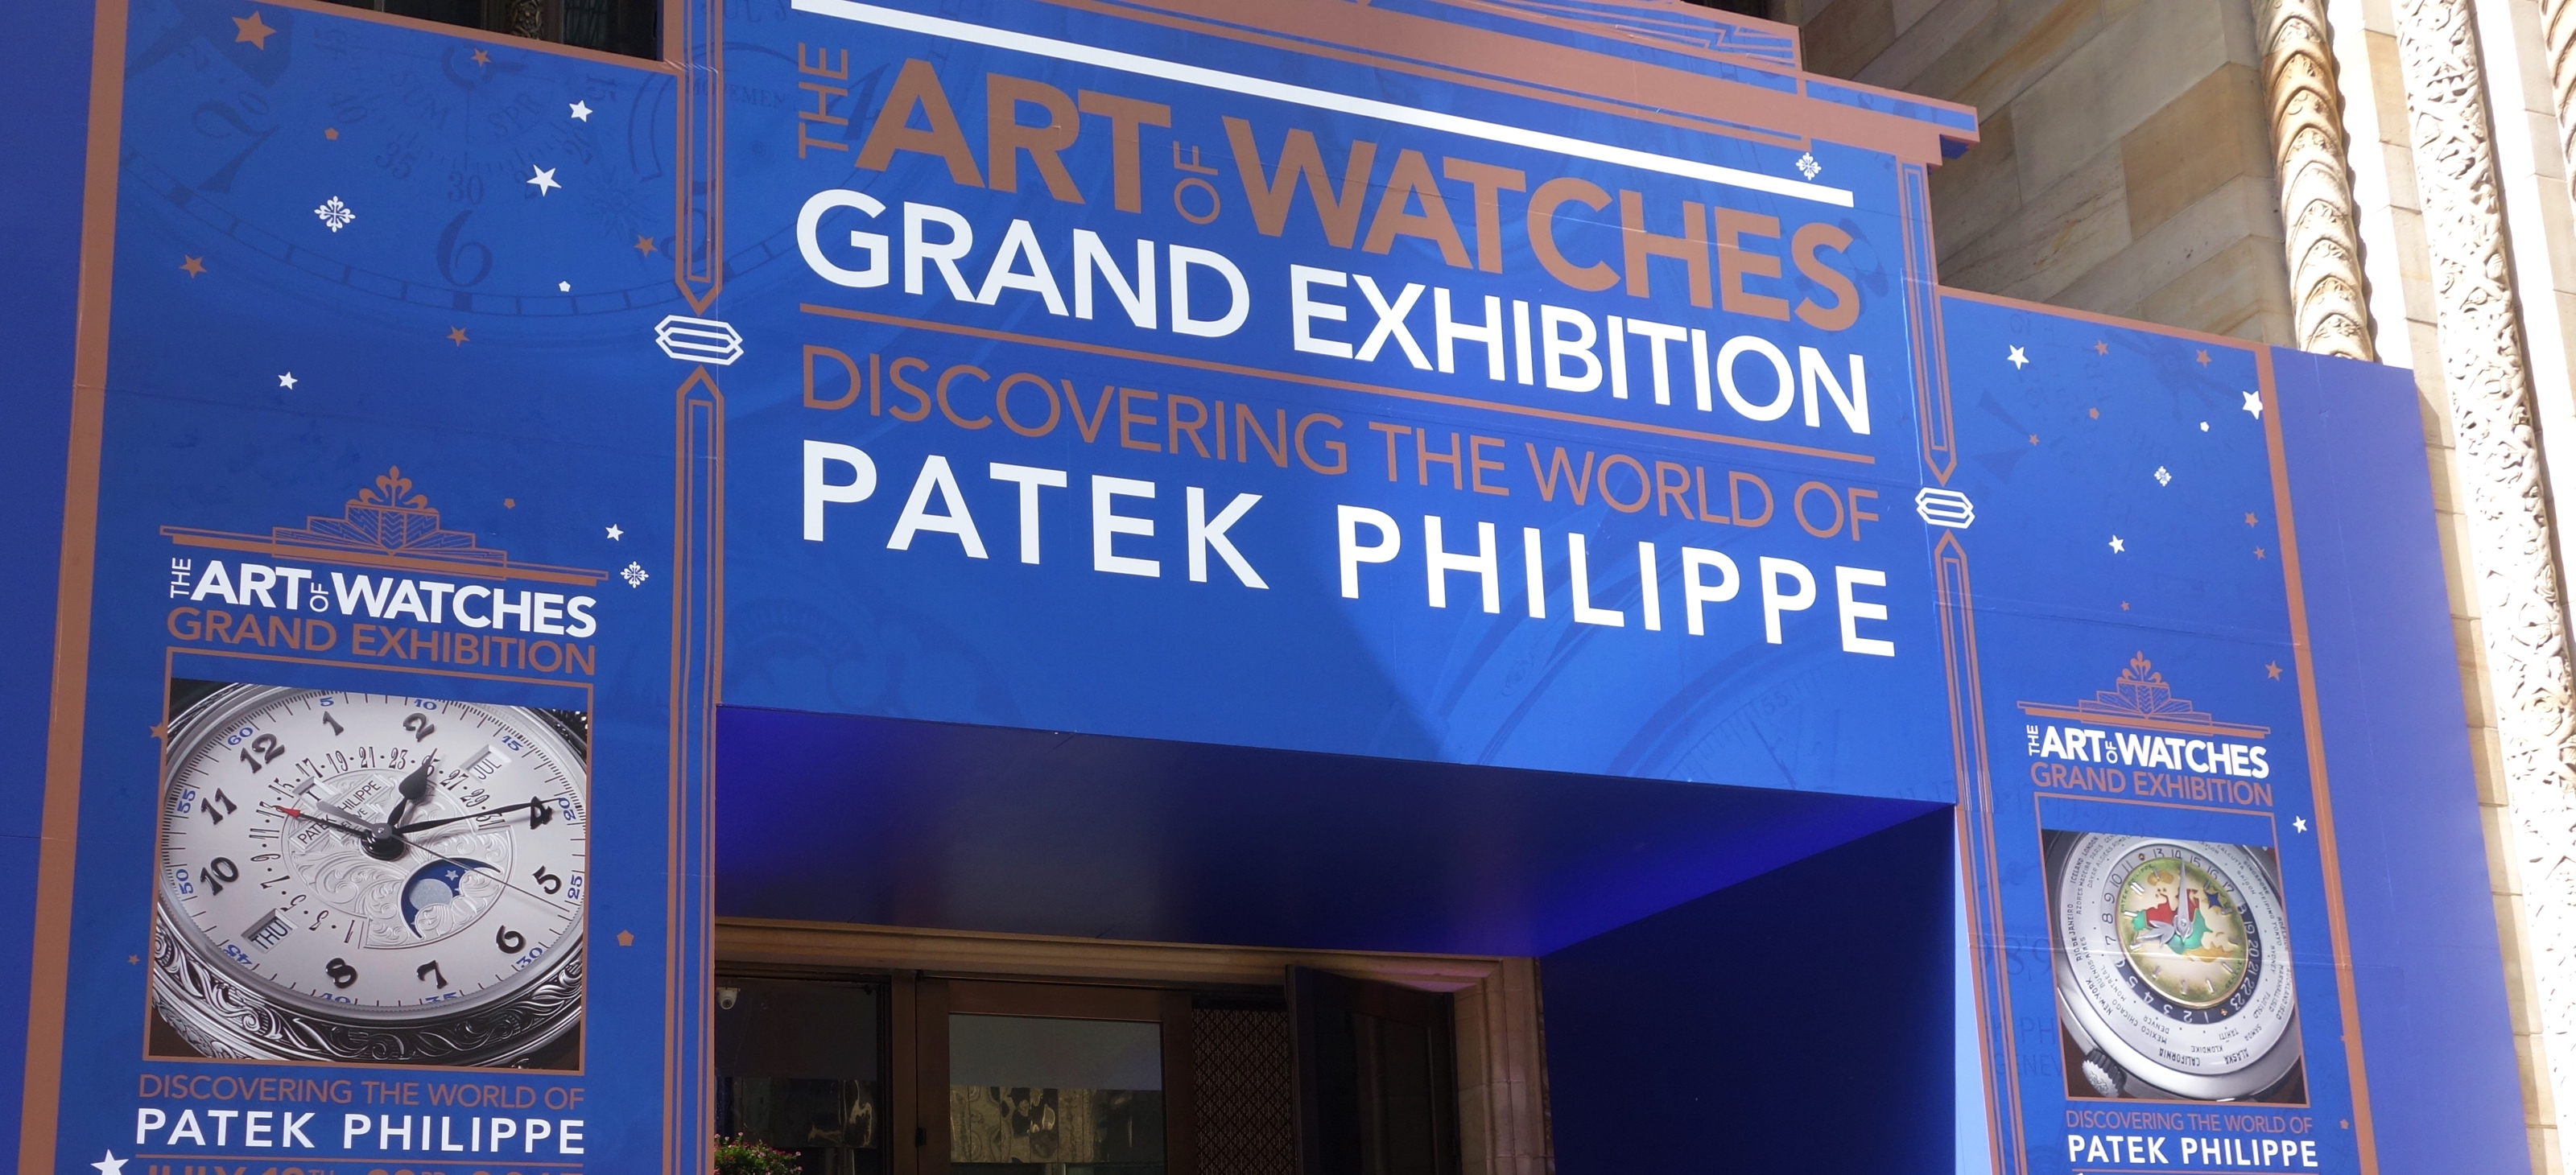 The Art of Watches Grand Exhibition New York 2017